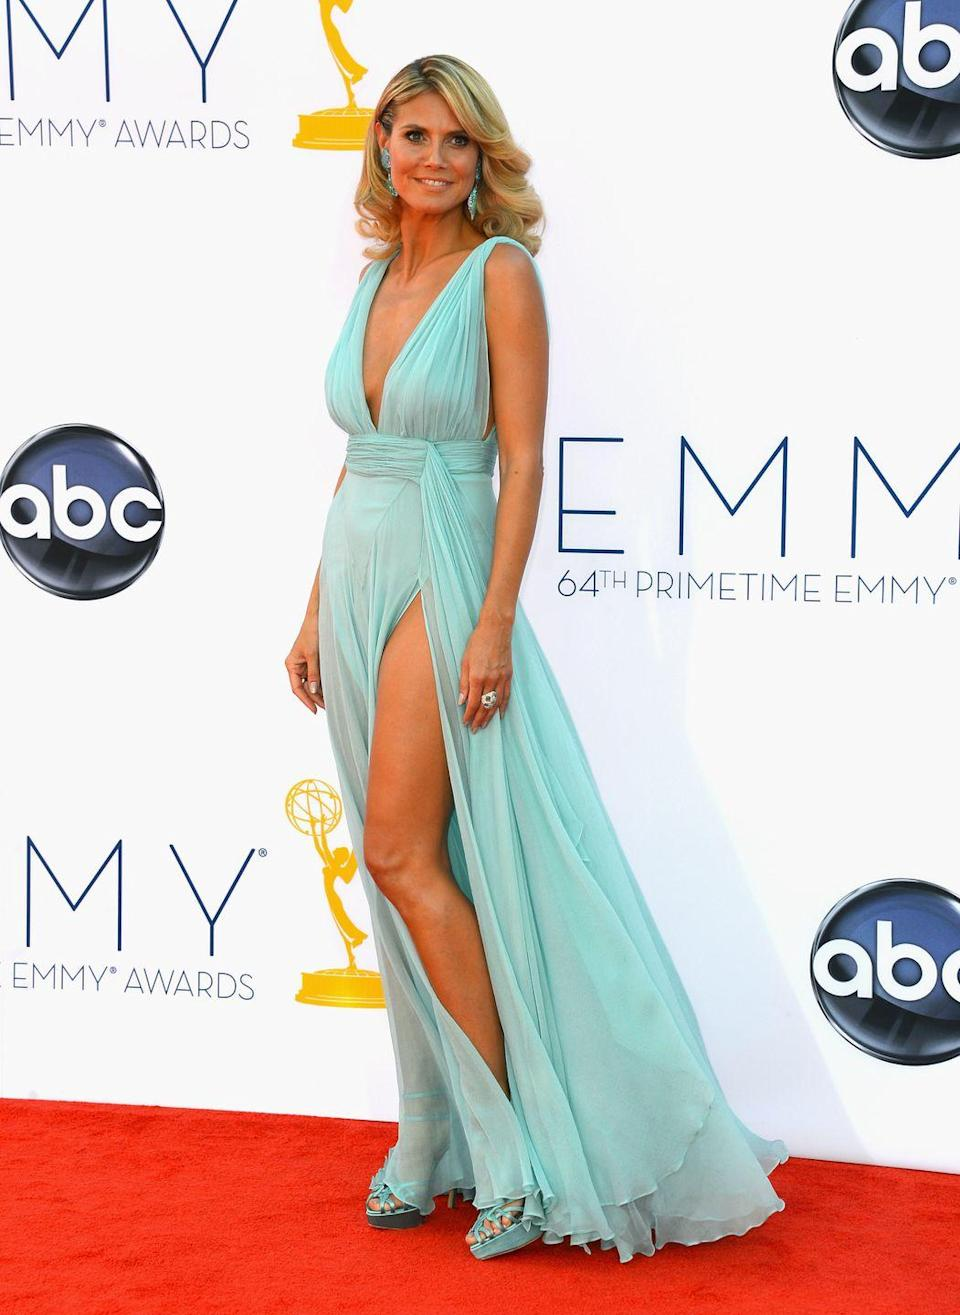 <p>While Heidi Klum's dress for the 2012 Emmys is a bit more Grecian-inspired than Jasmine's outfit, the color is an exact match.</p>